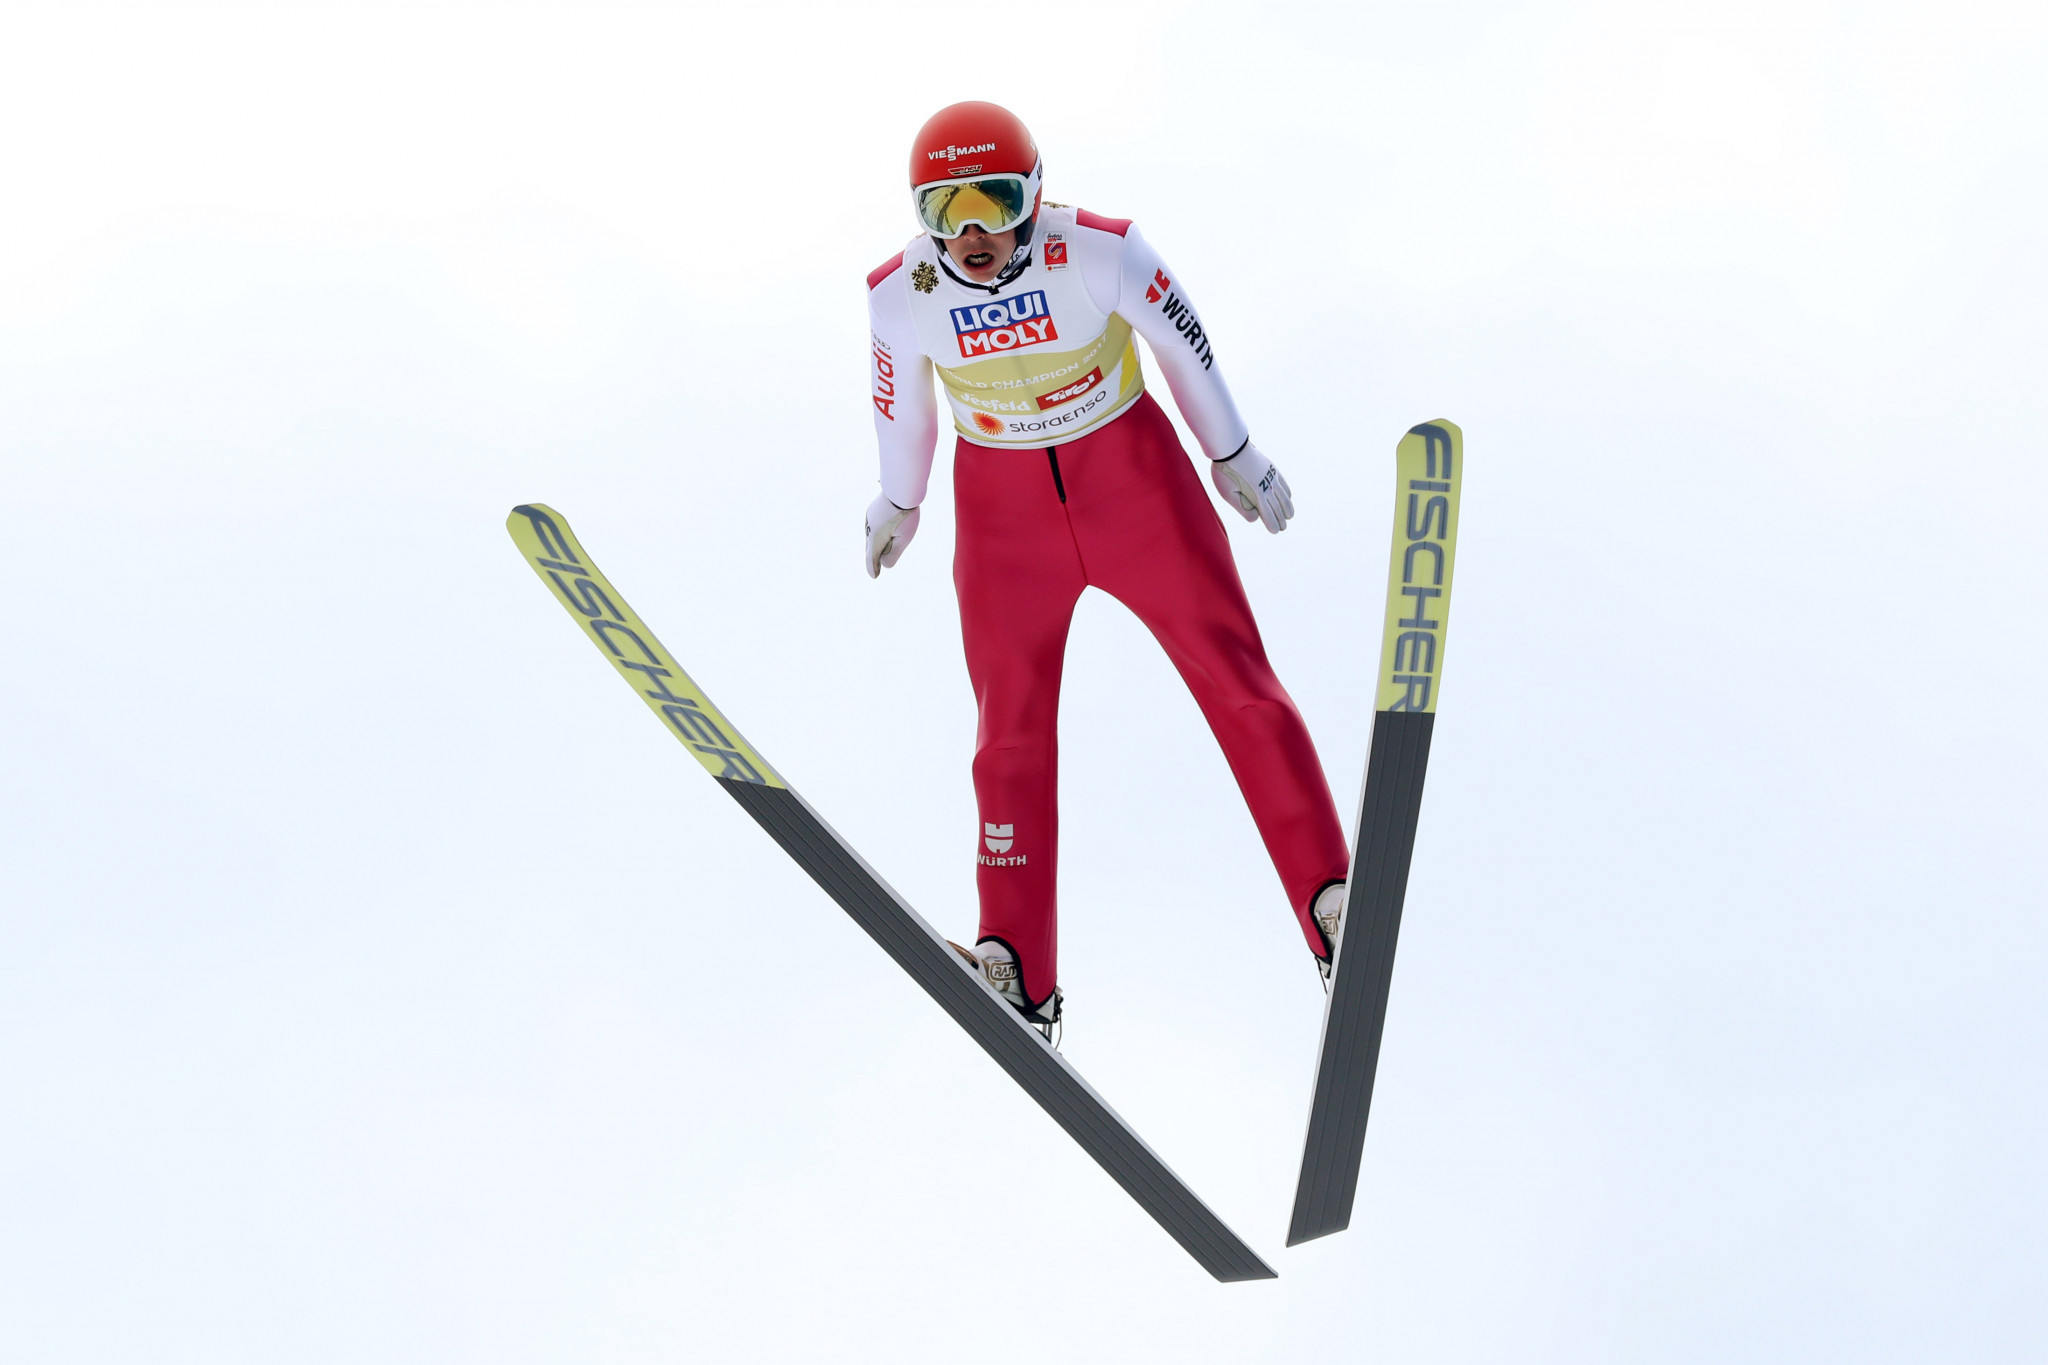 Frenzel and Rydzek among absentees as FIS Nordic Combined World Cup begins in Oslo